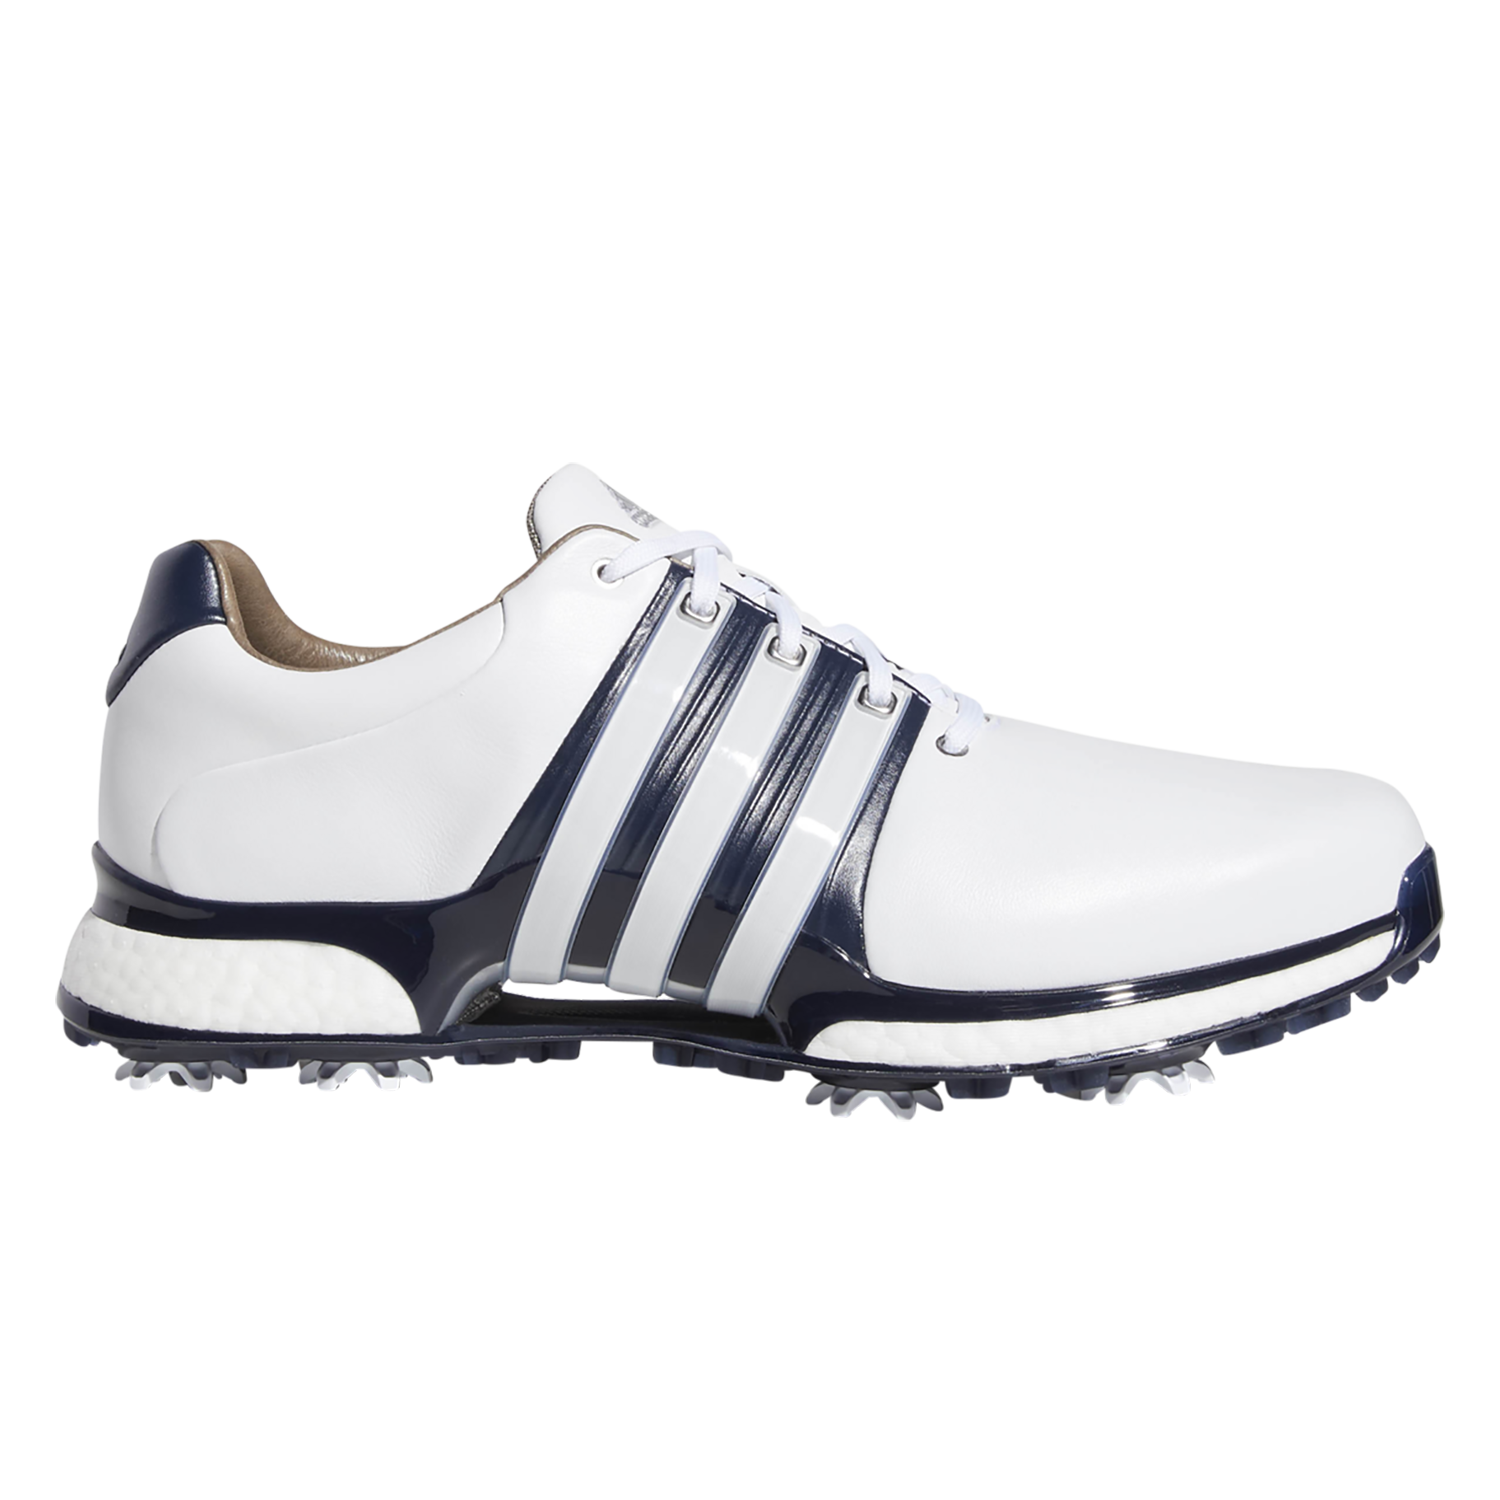 Clearance Golf Shoes   PGA TOUR Superstore